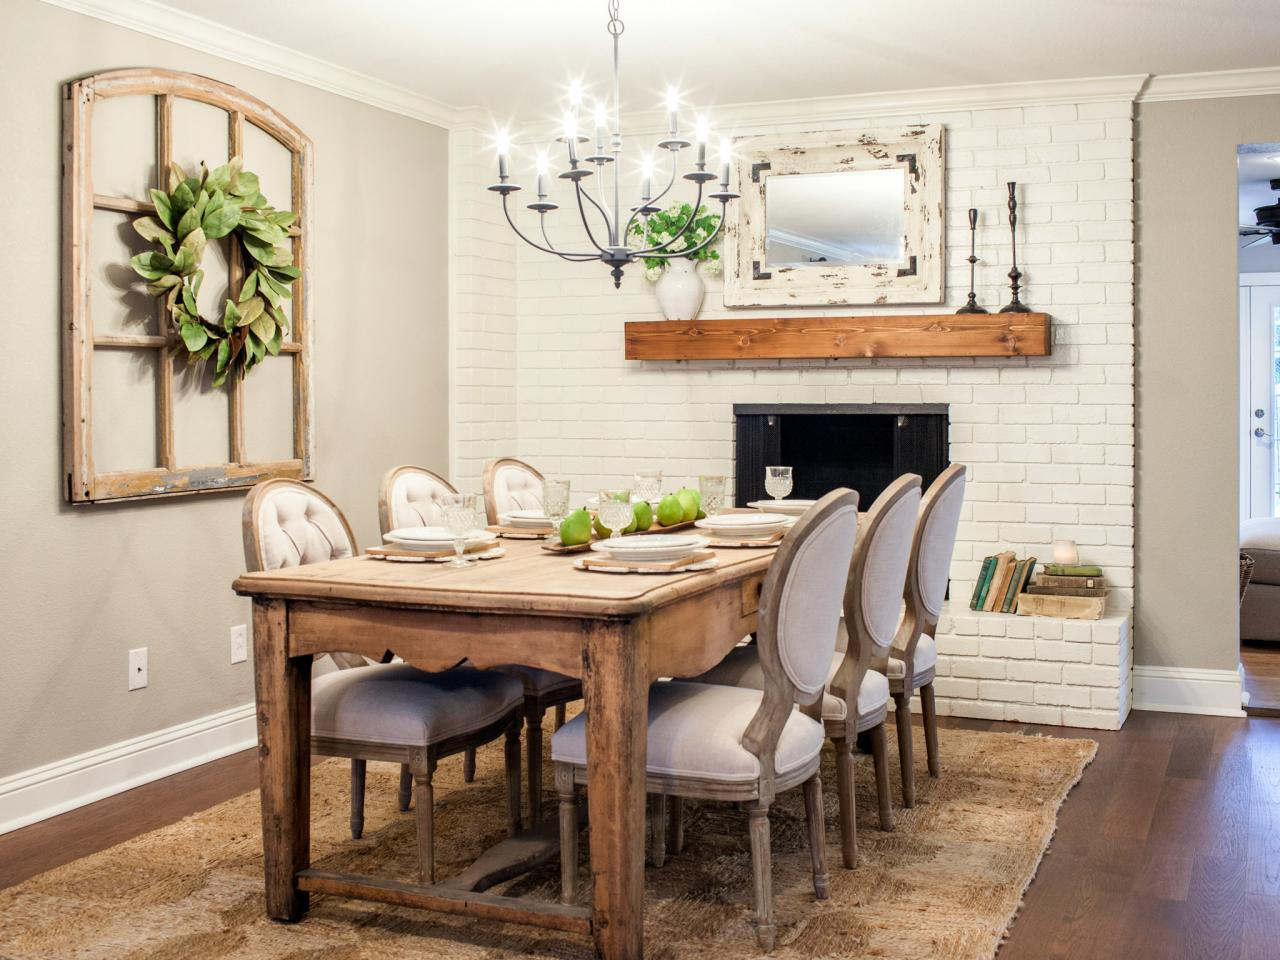 Fixer upper archives for Kitchen dining room wall decor